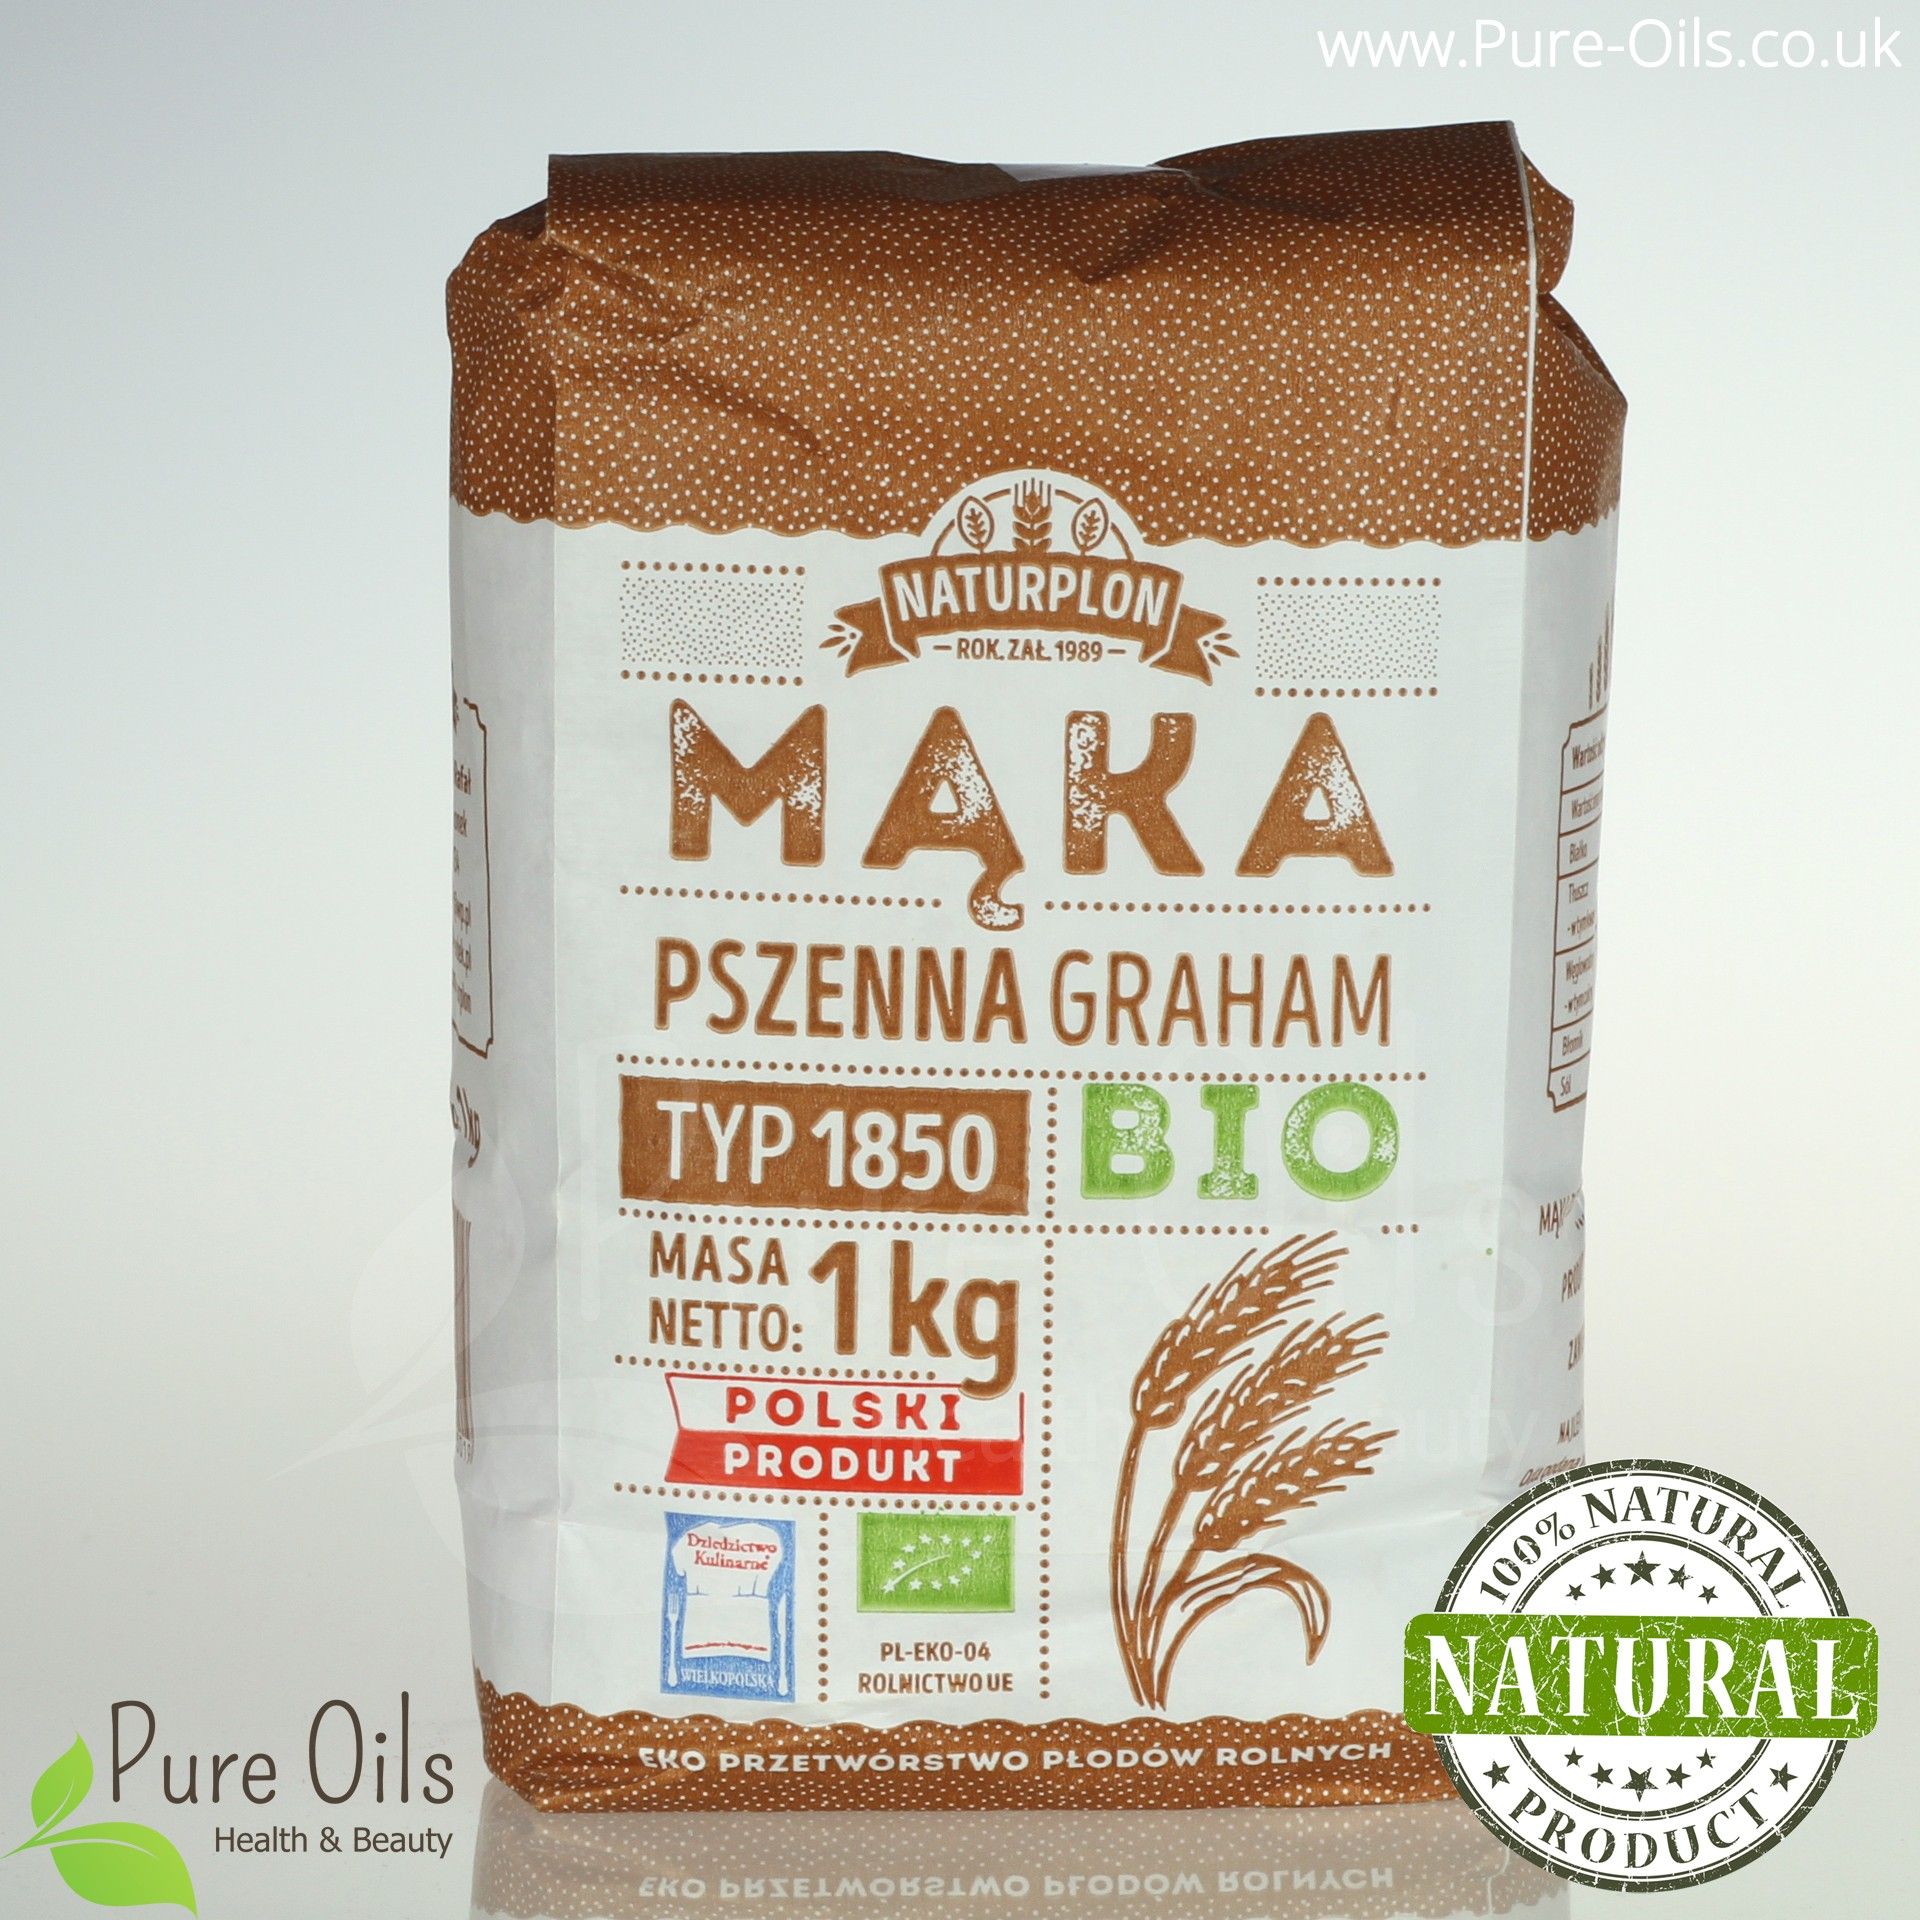 Graham Wheat Flour, Type 1850 - Organic, Naturplon